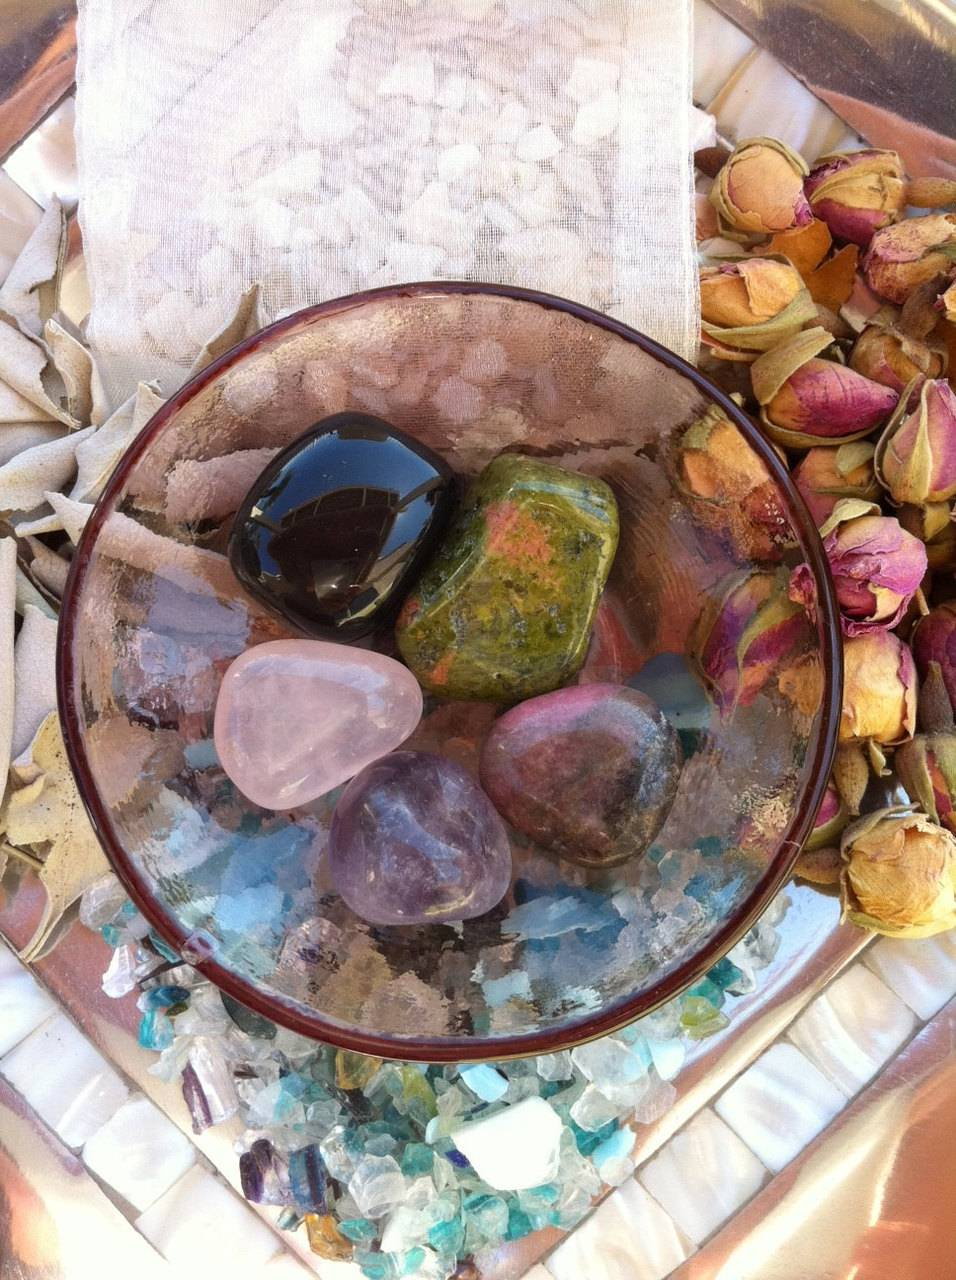 Peaceful Heart gem and crystal healing completer set with descriptions